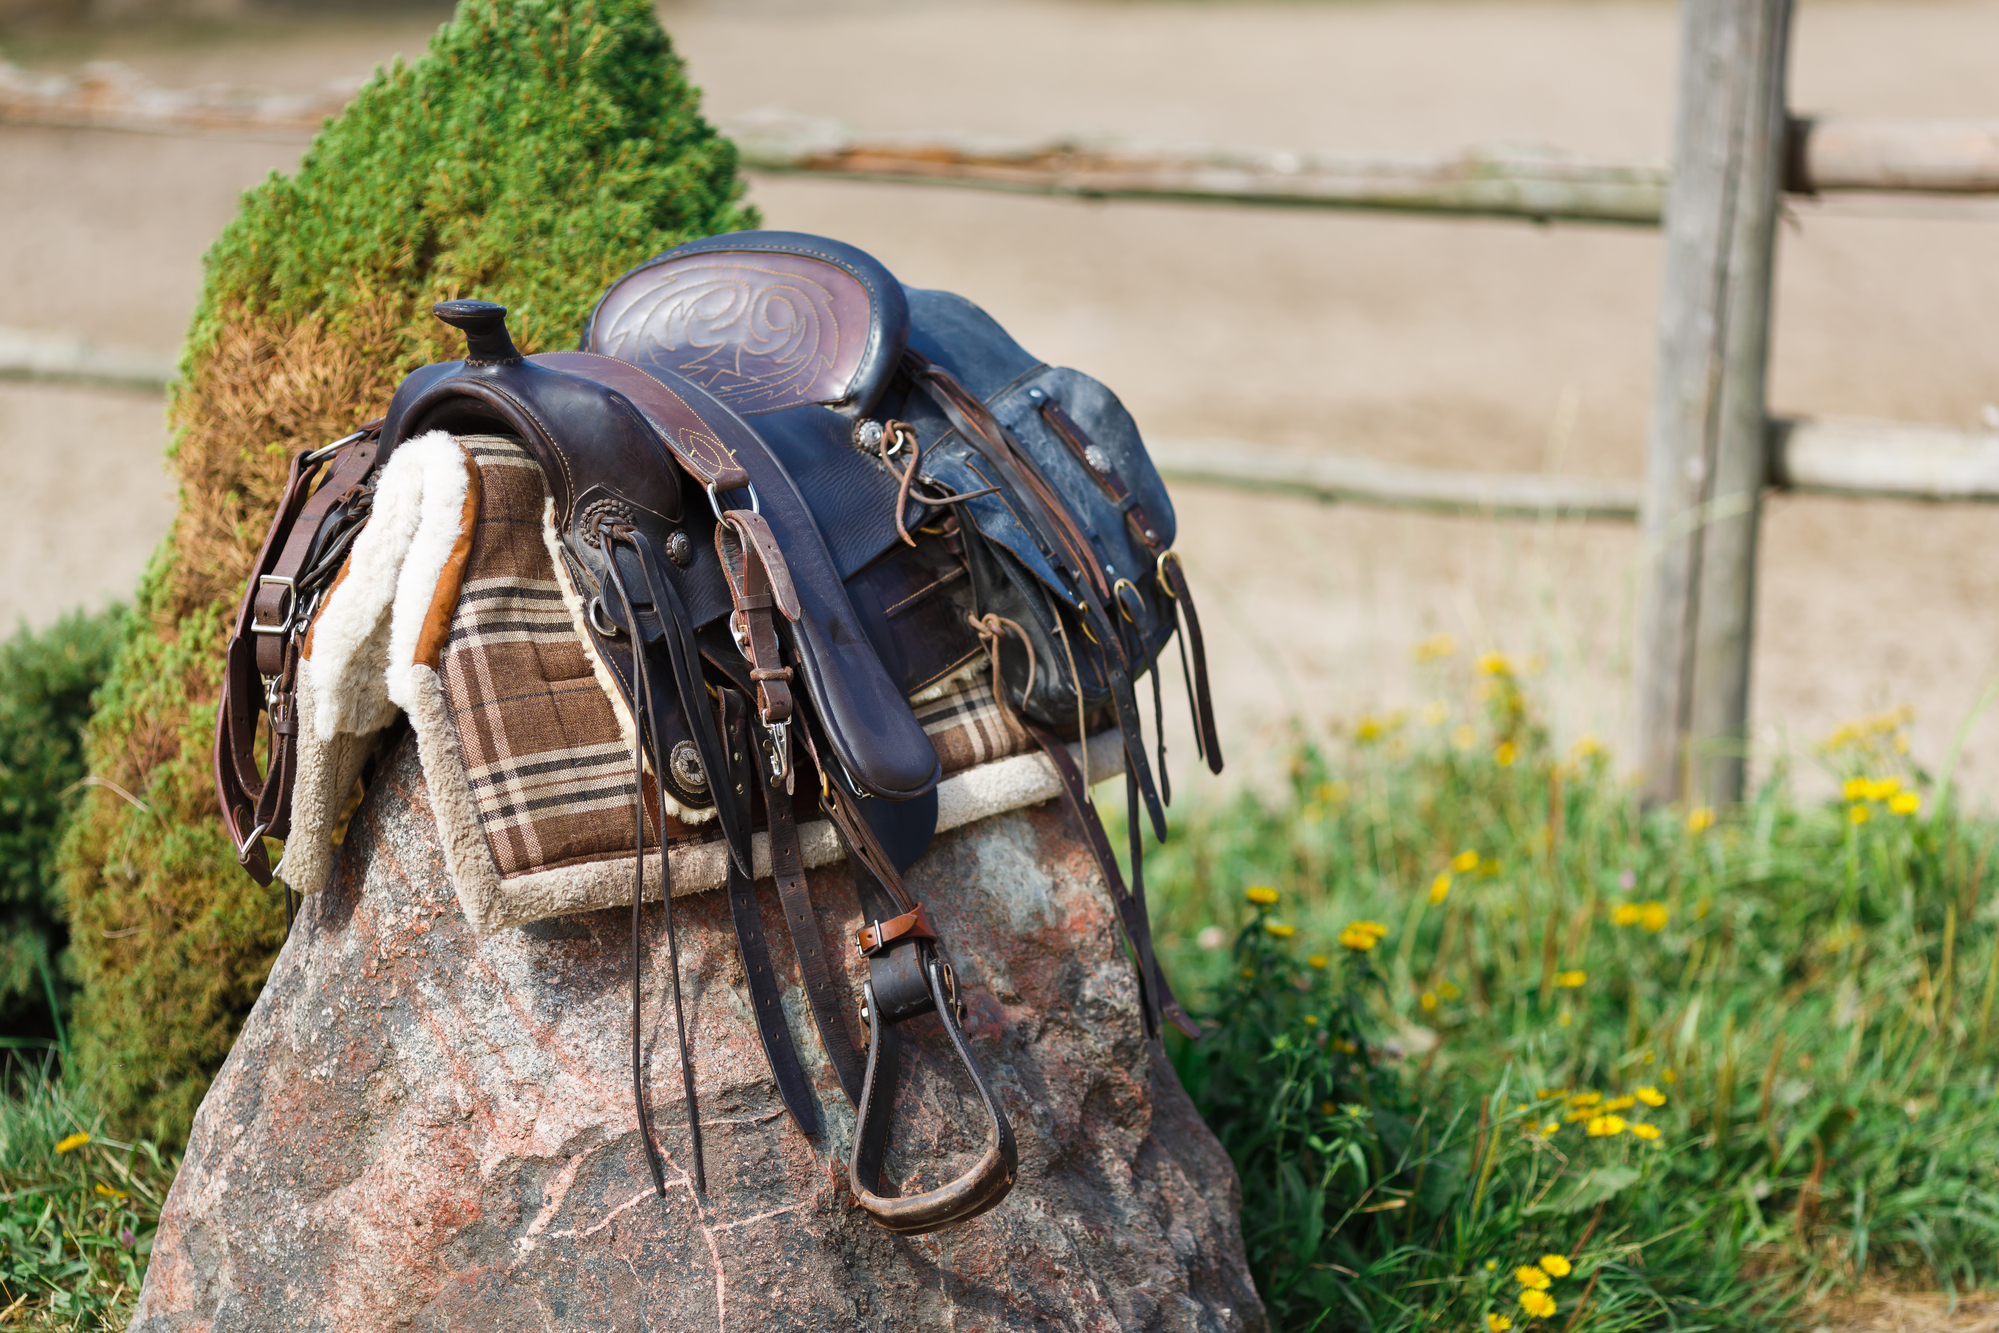 Old ornamental saddle on the stone outdoor